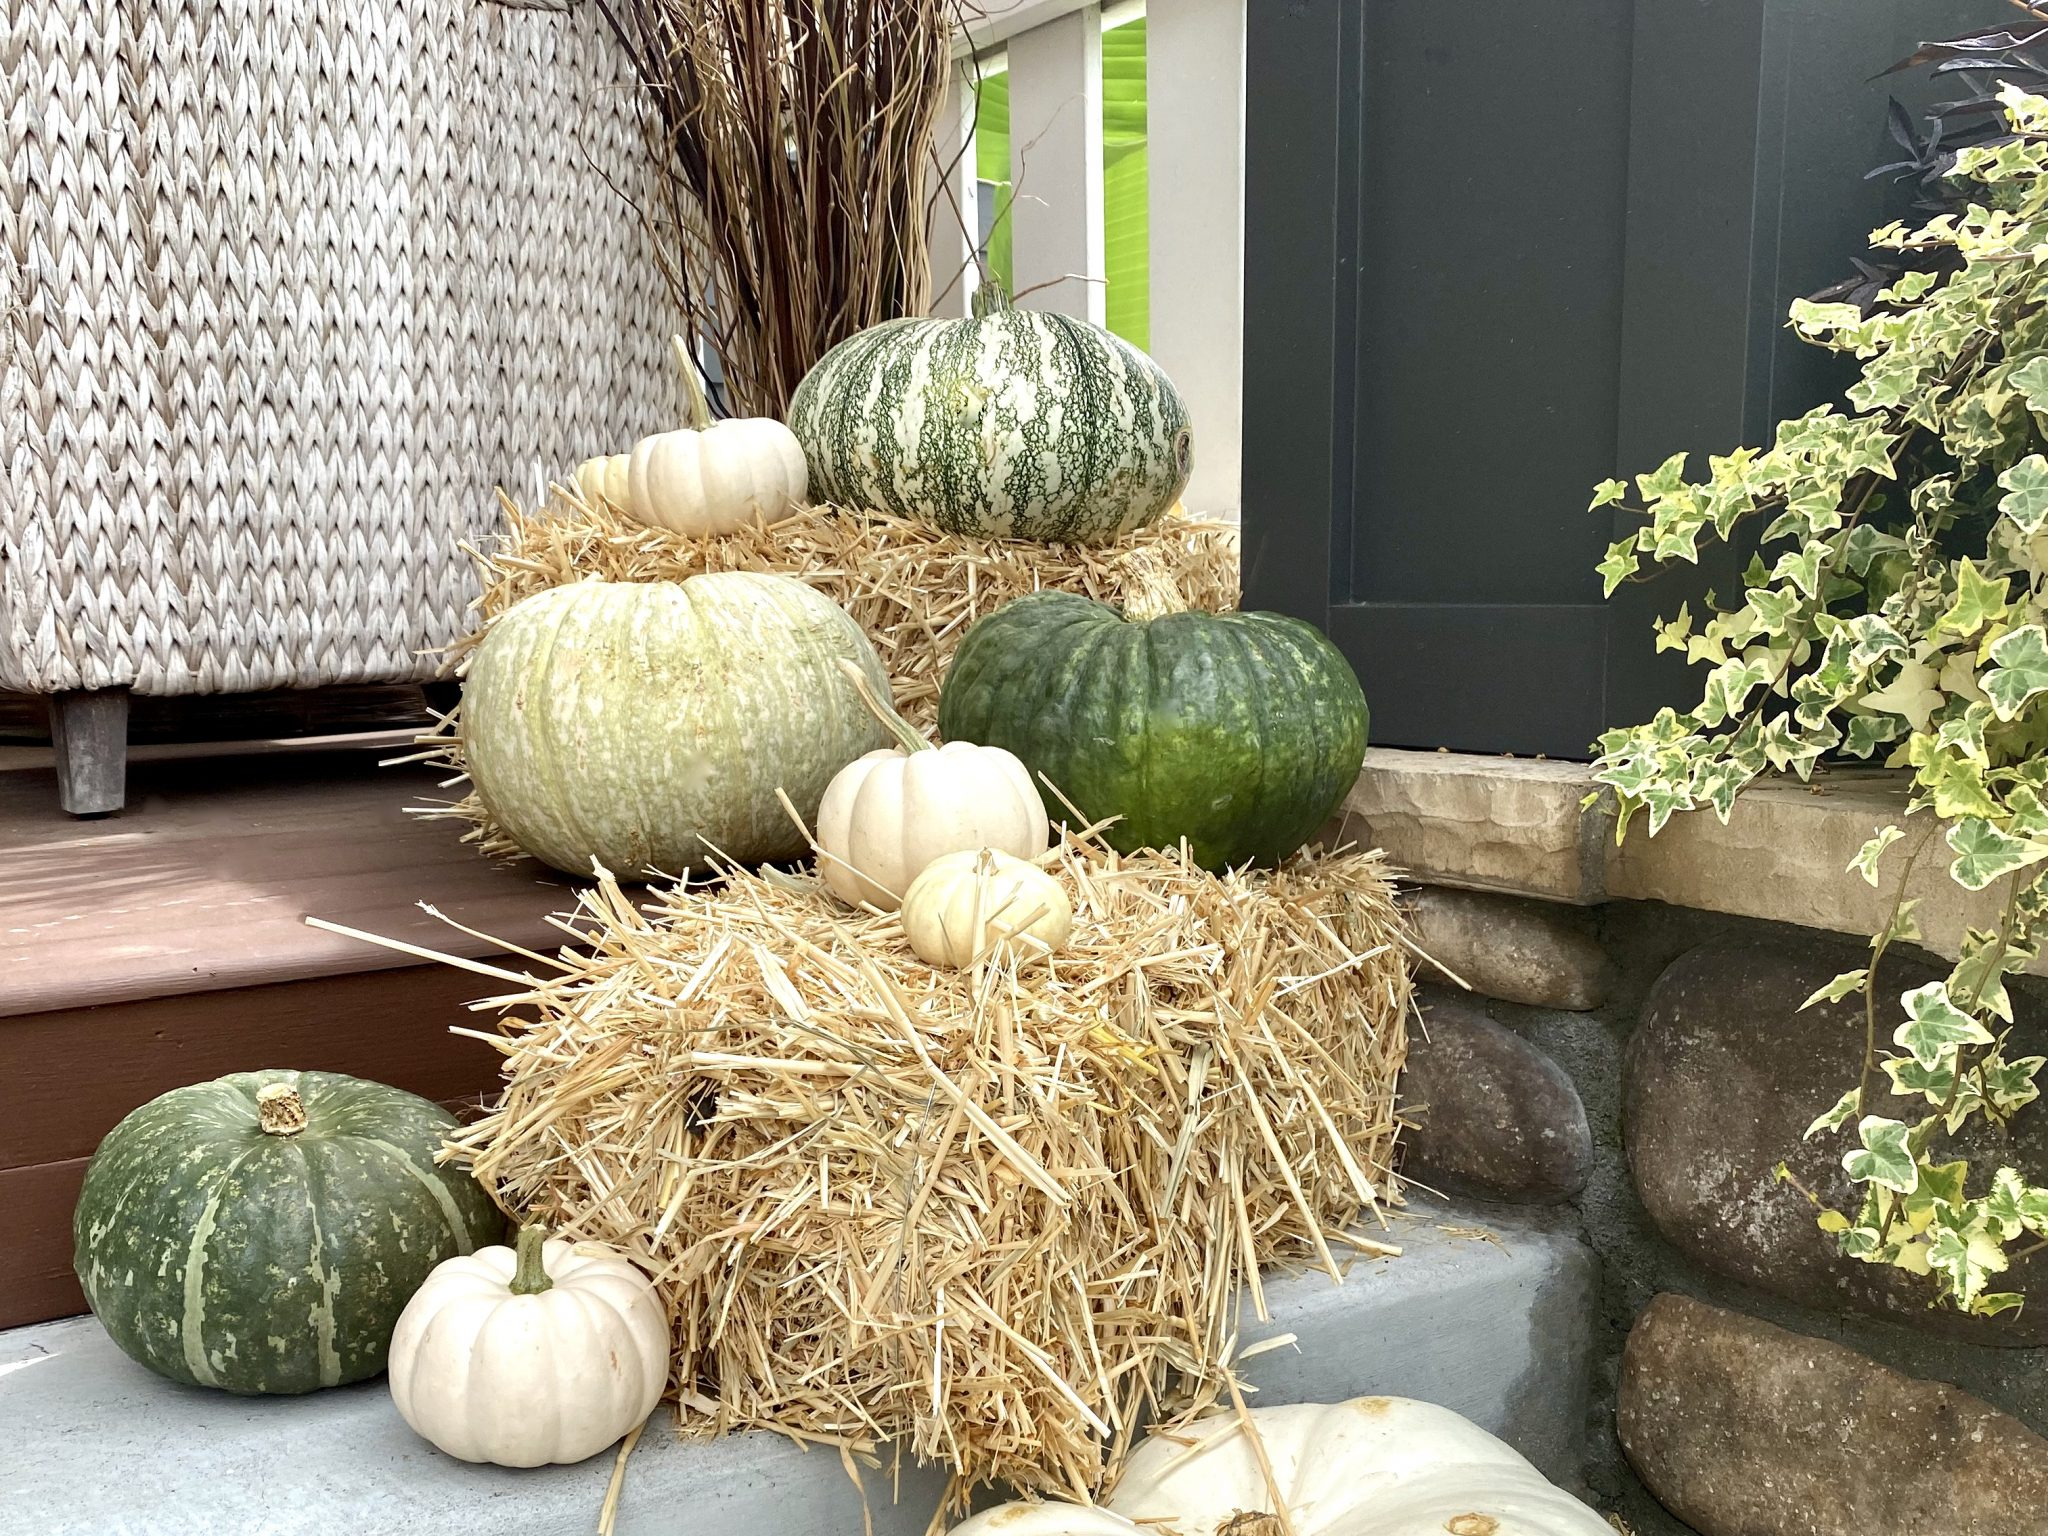 Fall medley of green and white pumpkins on hay bales sitting on front porch of Craftsman style home